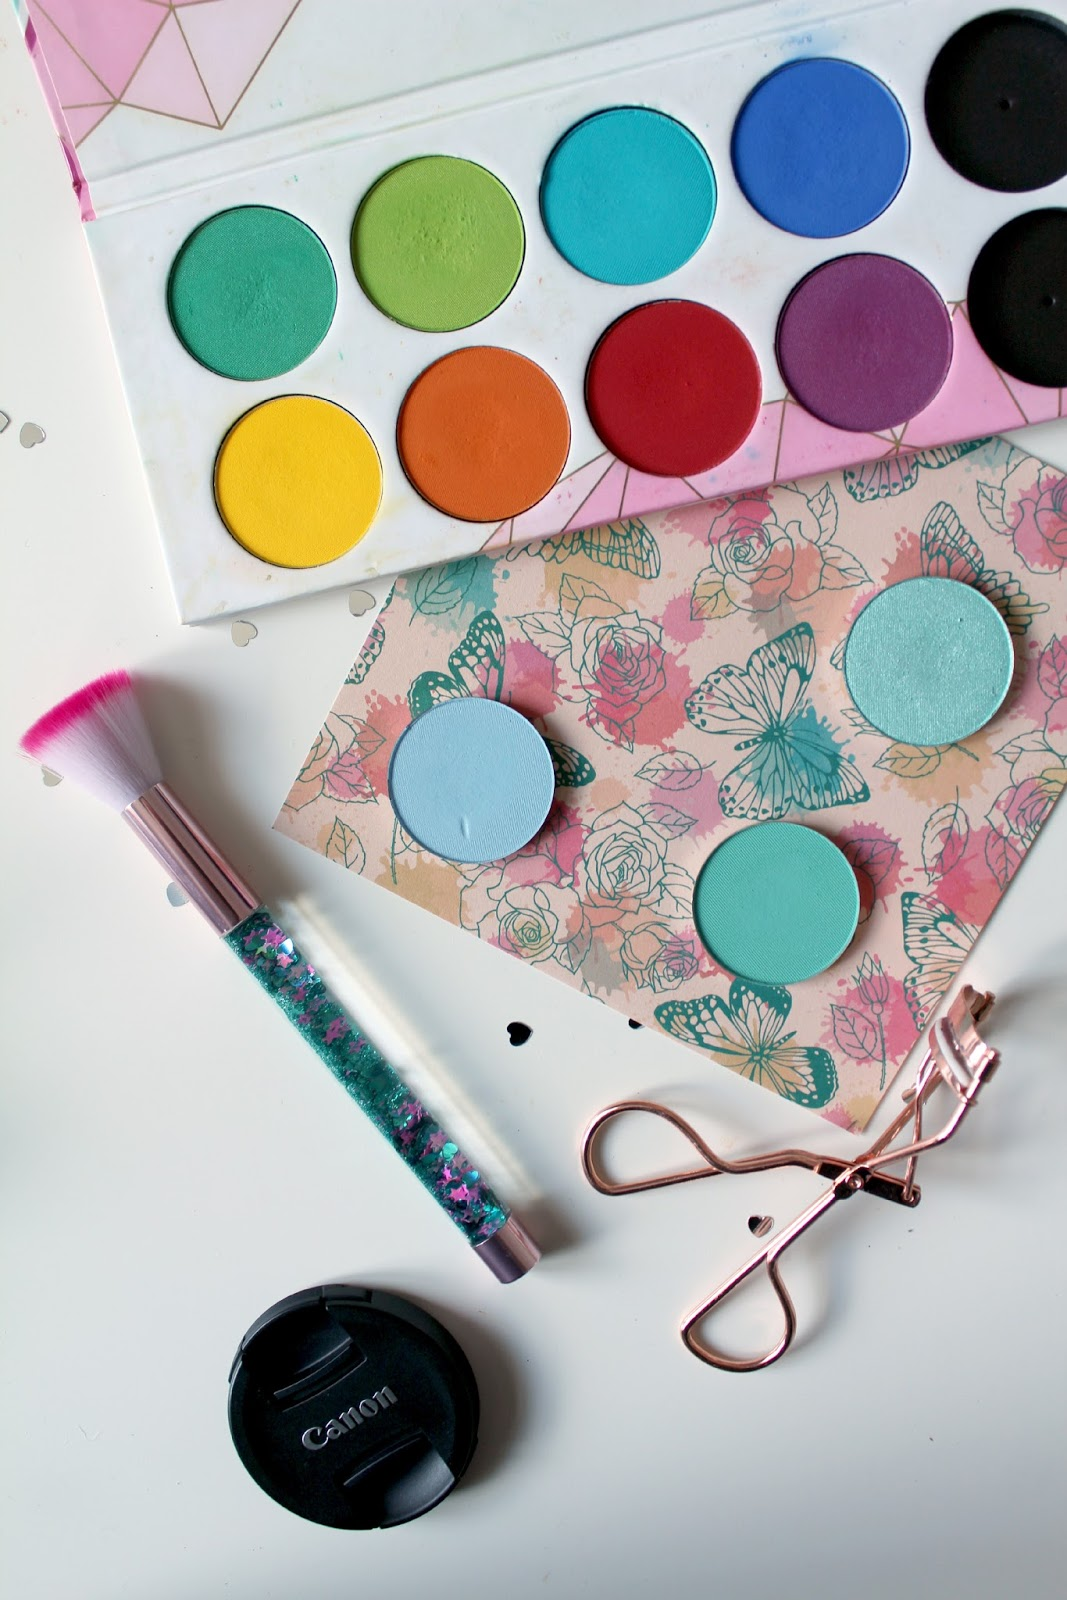 sugarpill pro pan pressed eyeshadows, review, swatches, custom pro palette, 12-pan palette